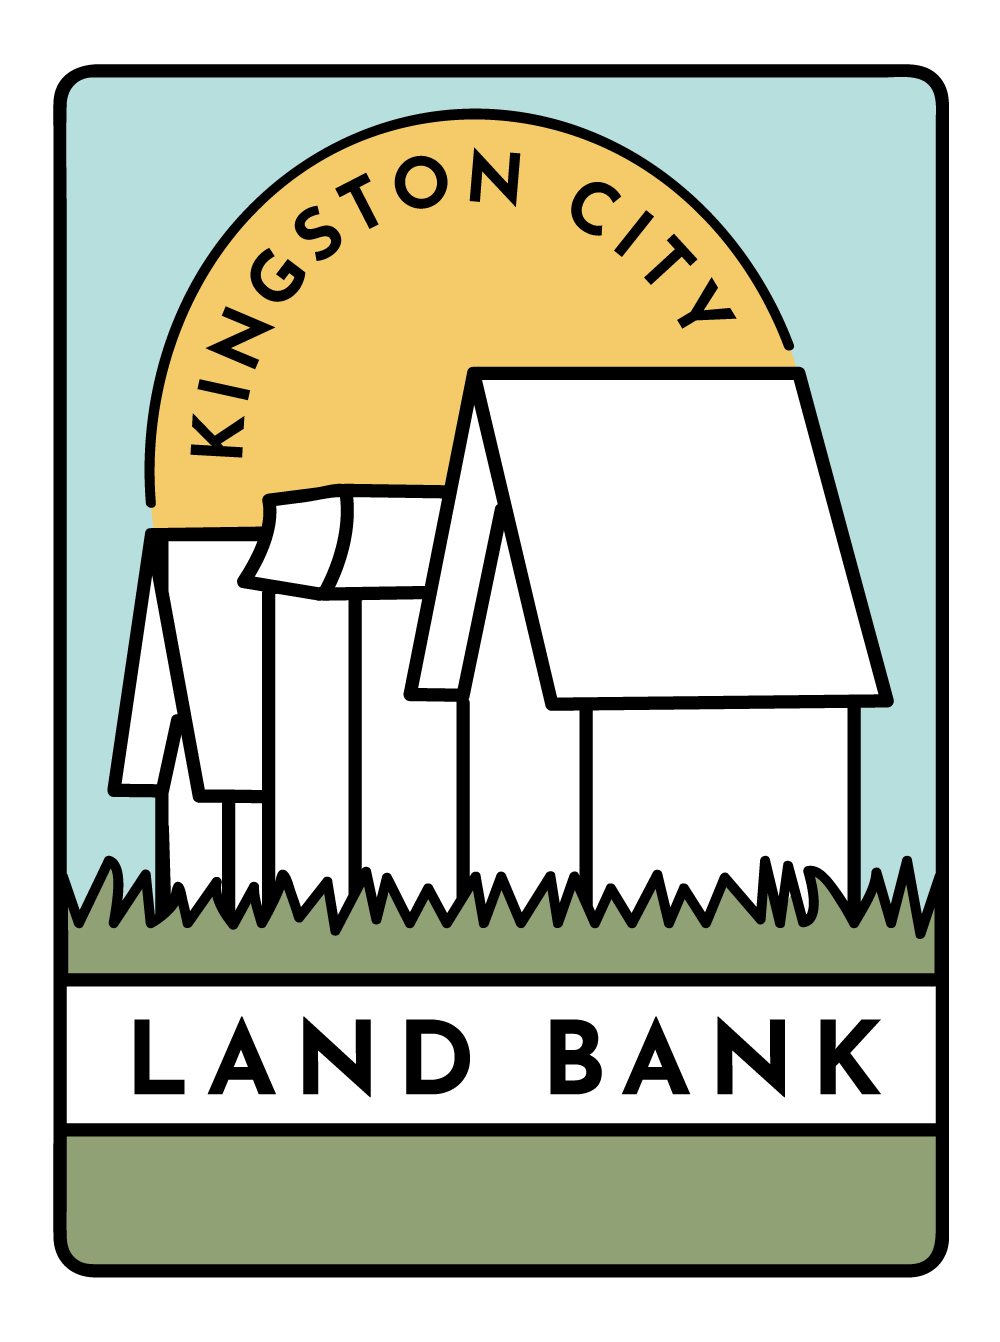 Kingston City Land Bank Logo